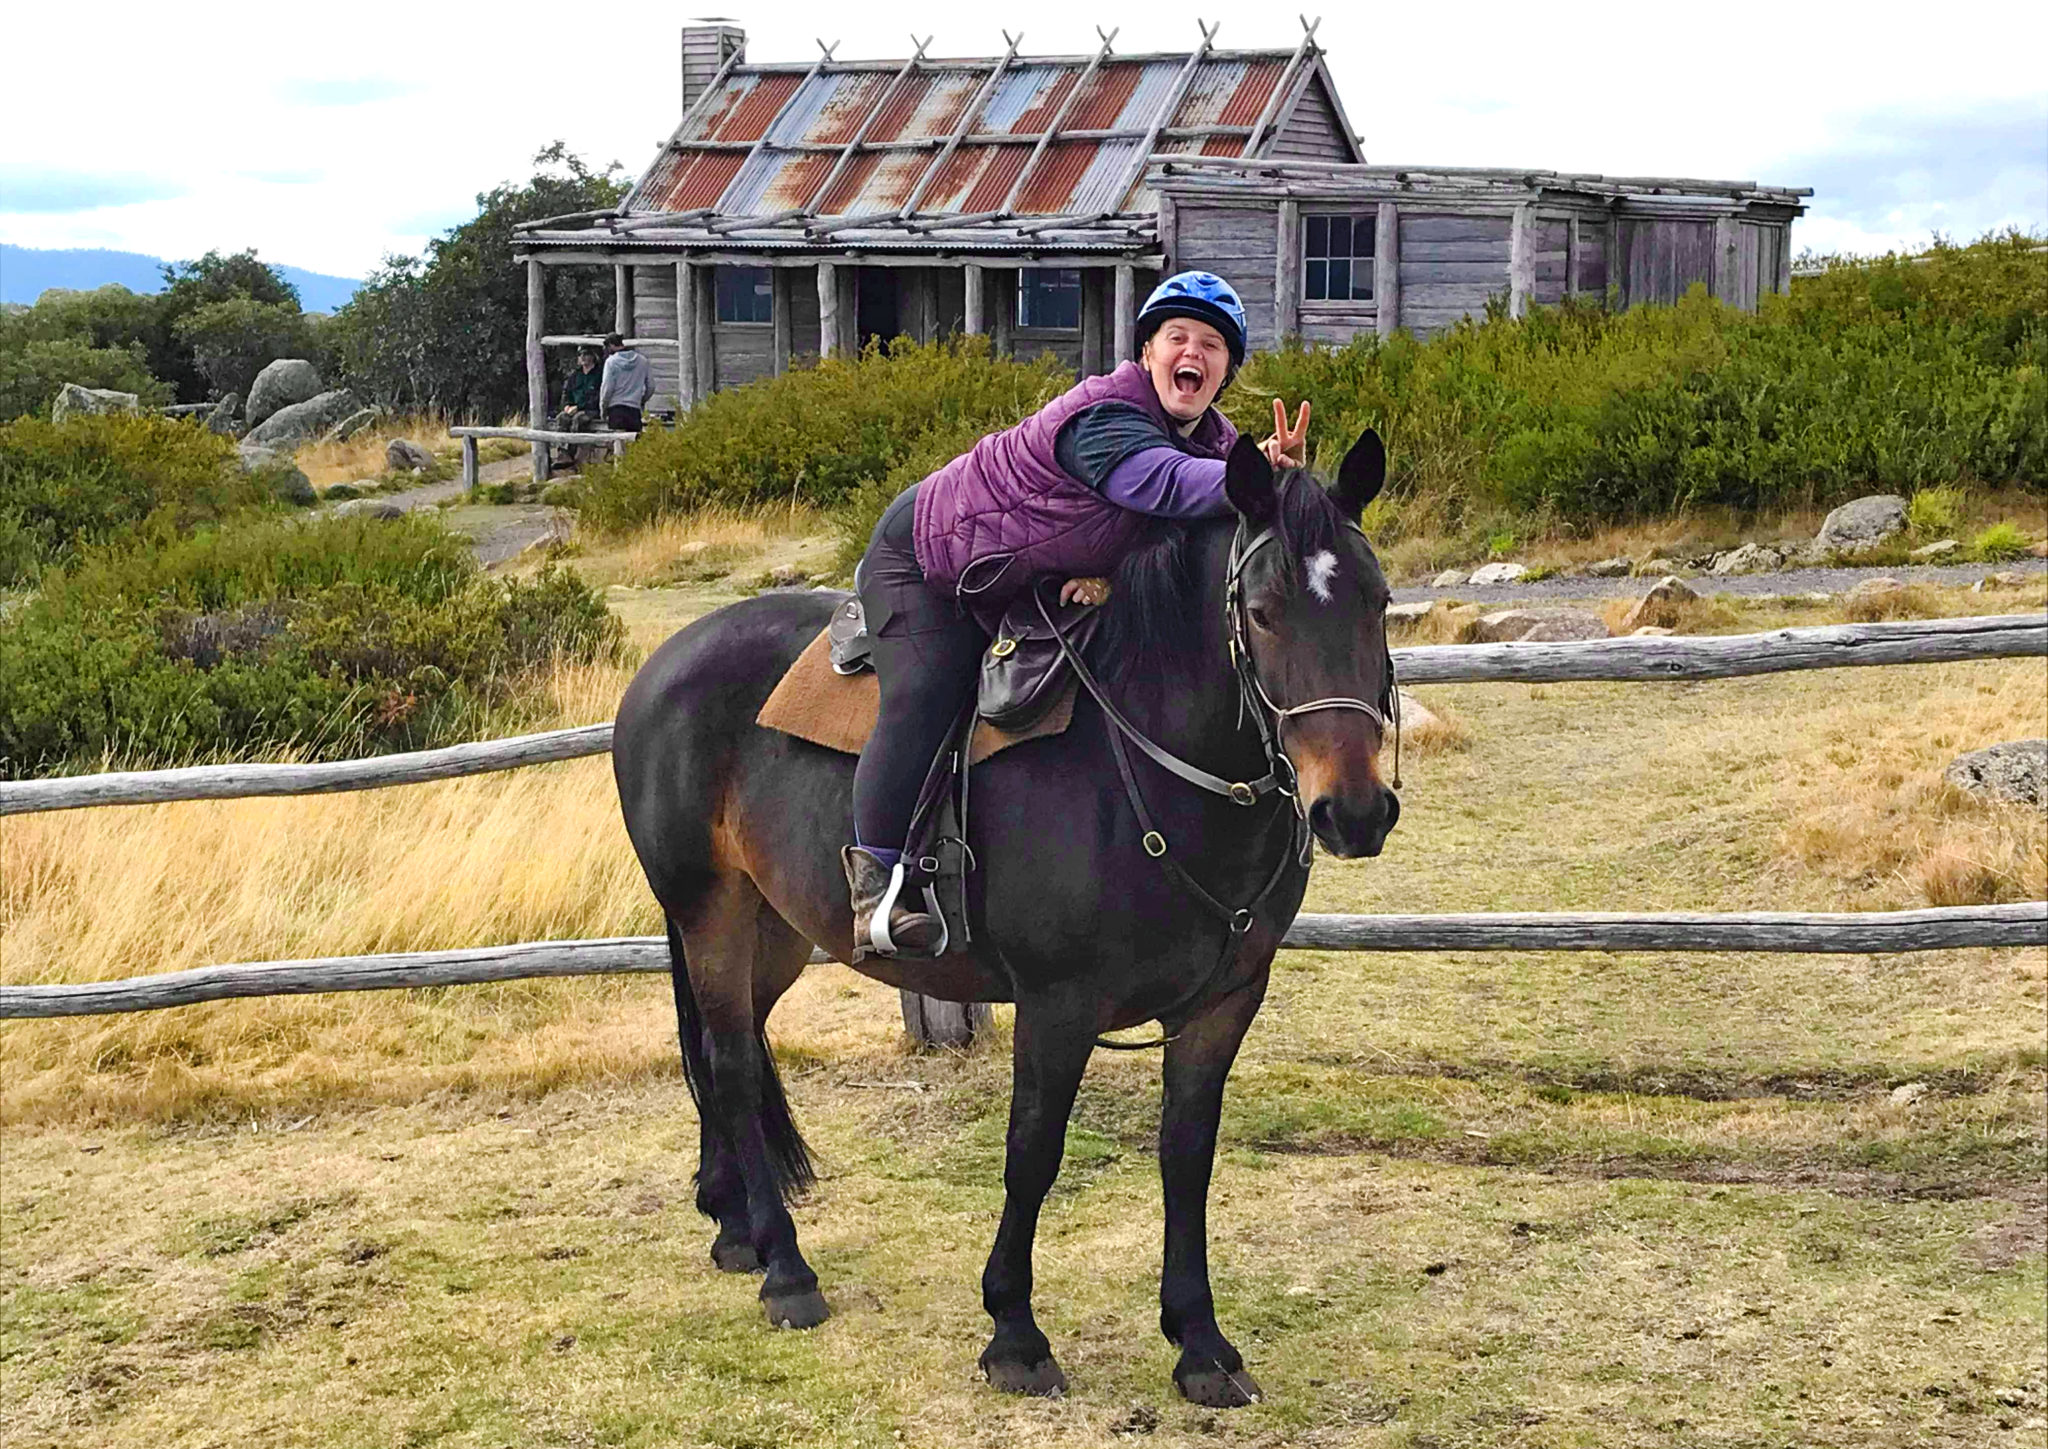 Globetrotting as a plus-sized rider - Globetrotting horse riding holidays